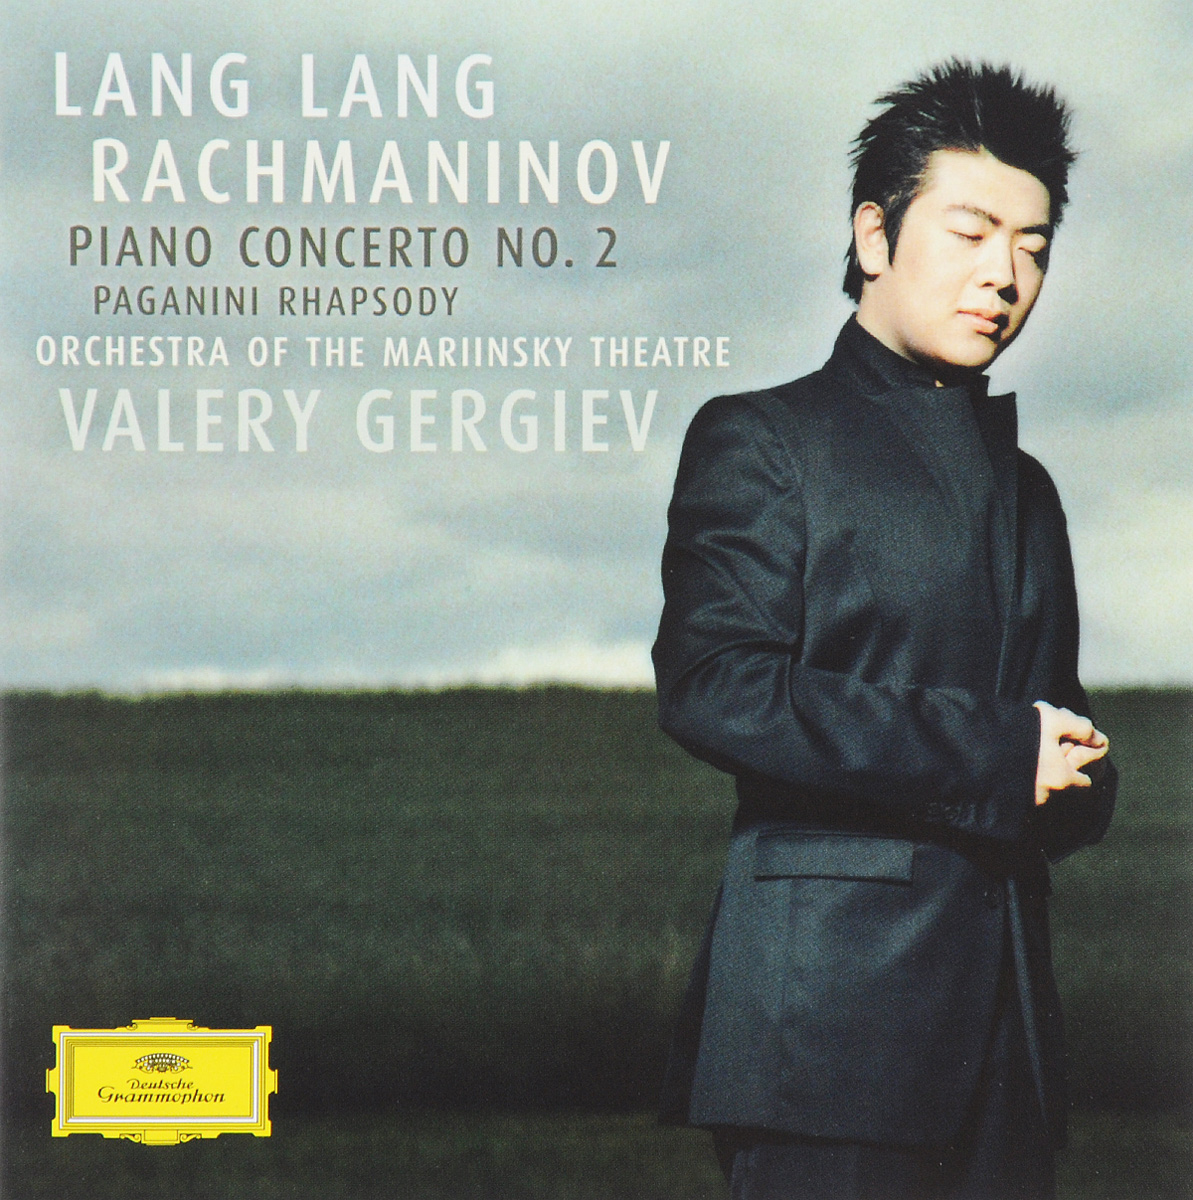 Валерий Гергиев,Ланг Ланг,Orchestra Of The Mariinsky Theatre Valery Gergiev, Lang Lang. Rachmaninov. Piano Concerto No. 2 / Paganini Rhapsody ланг ланг lang lang live at carnegie hall 2 lp